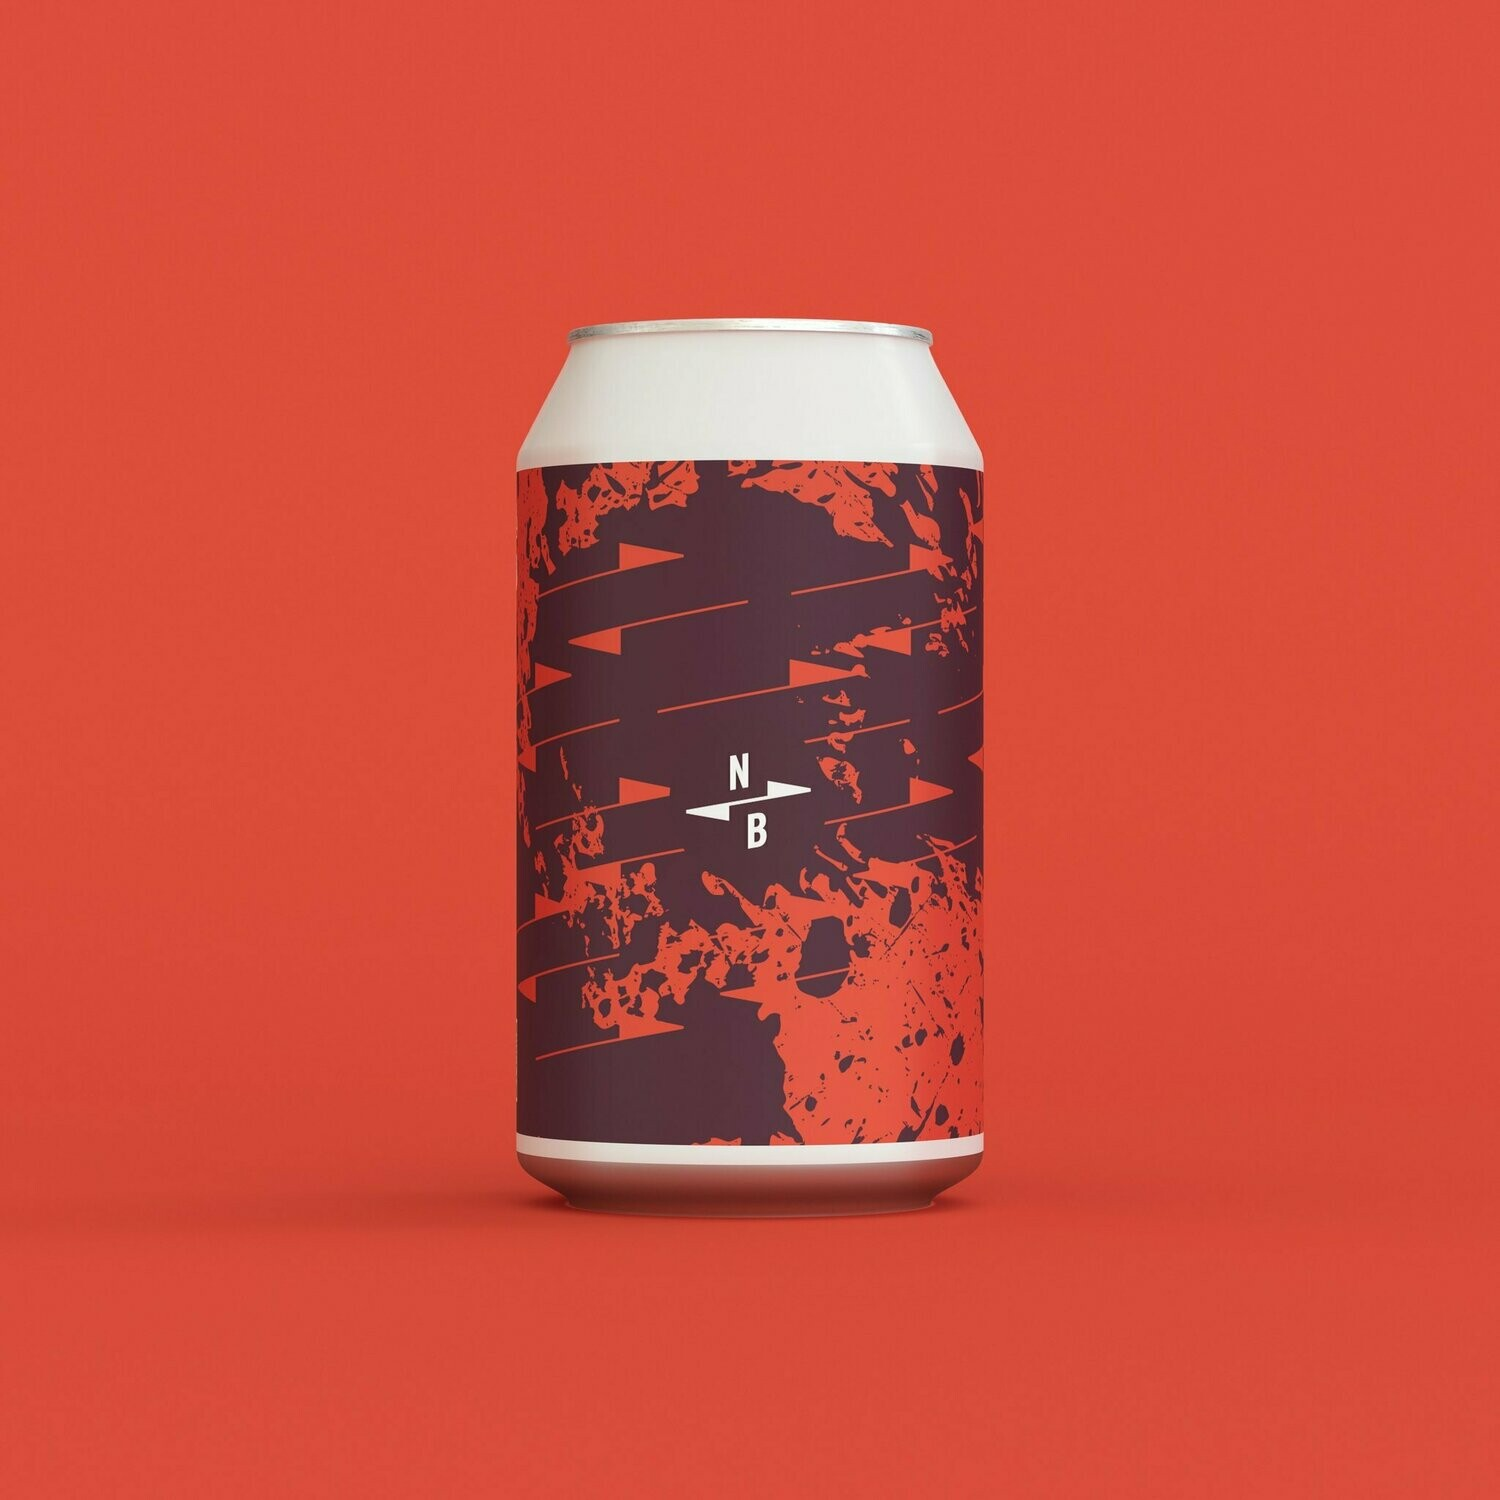 North Brewing - Volta - Blood Orange & Rhubarb Sour 4.1% (330ml)